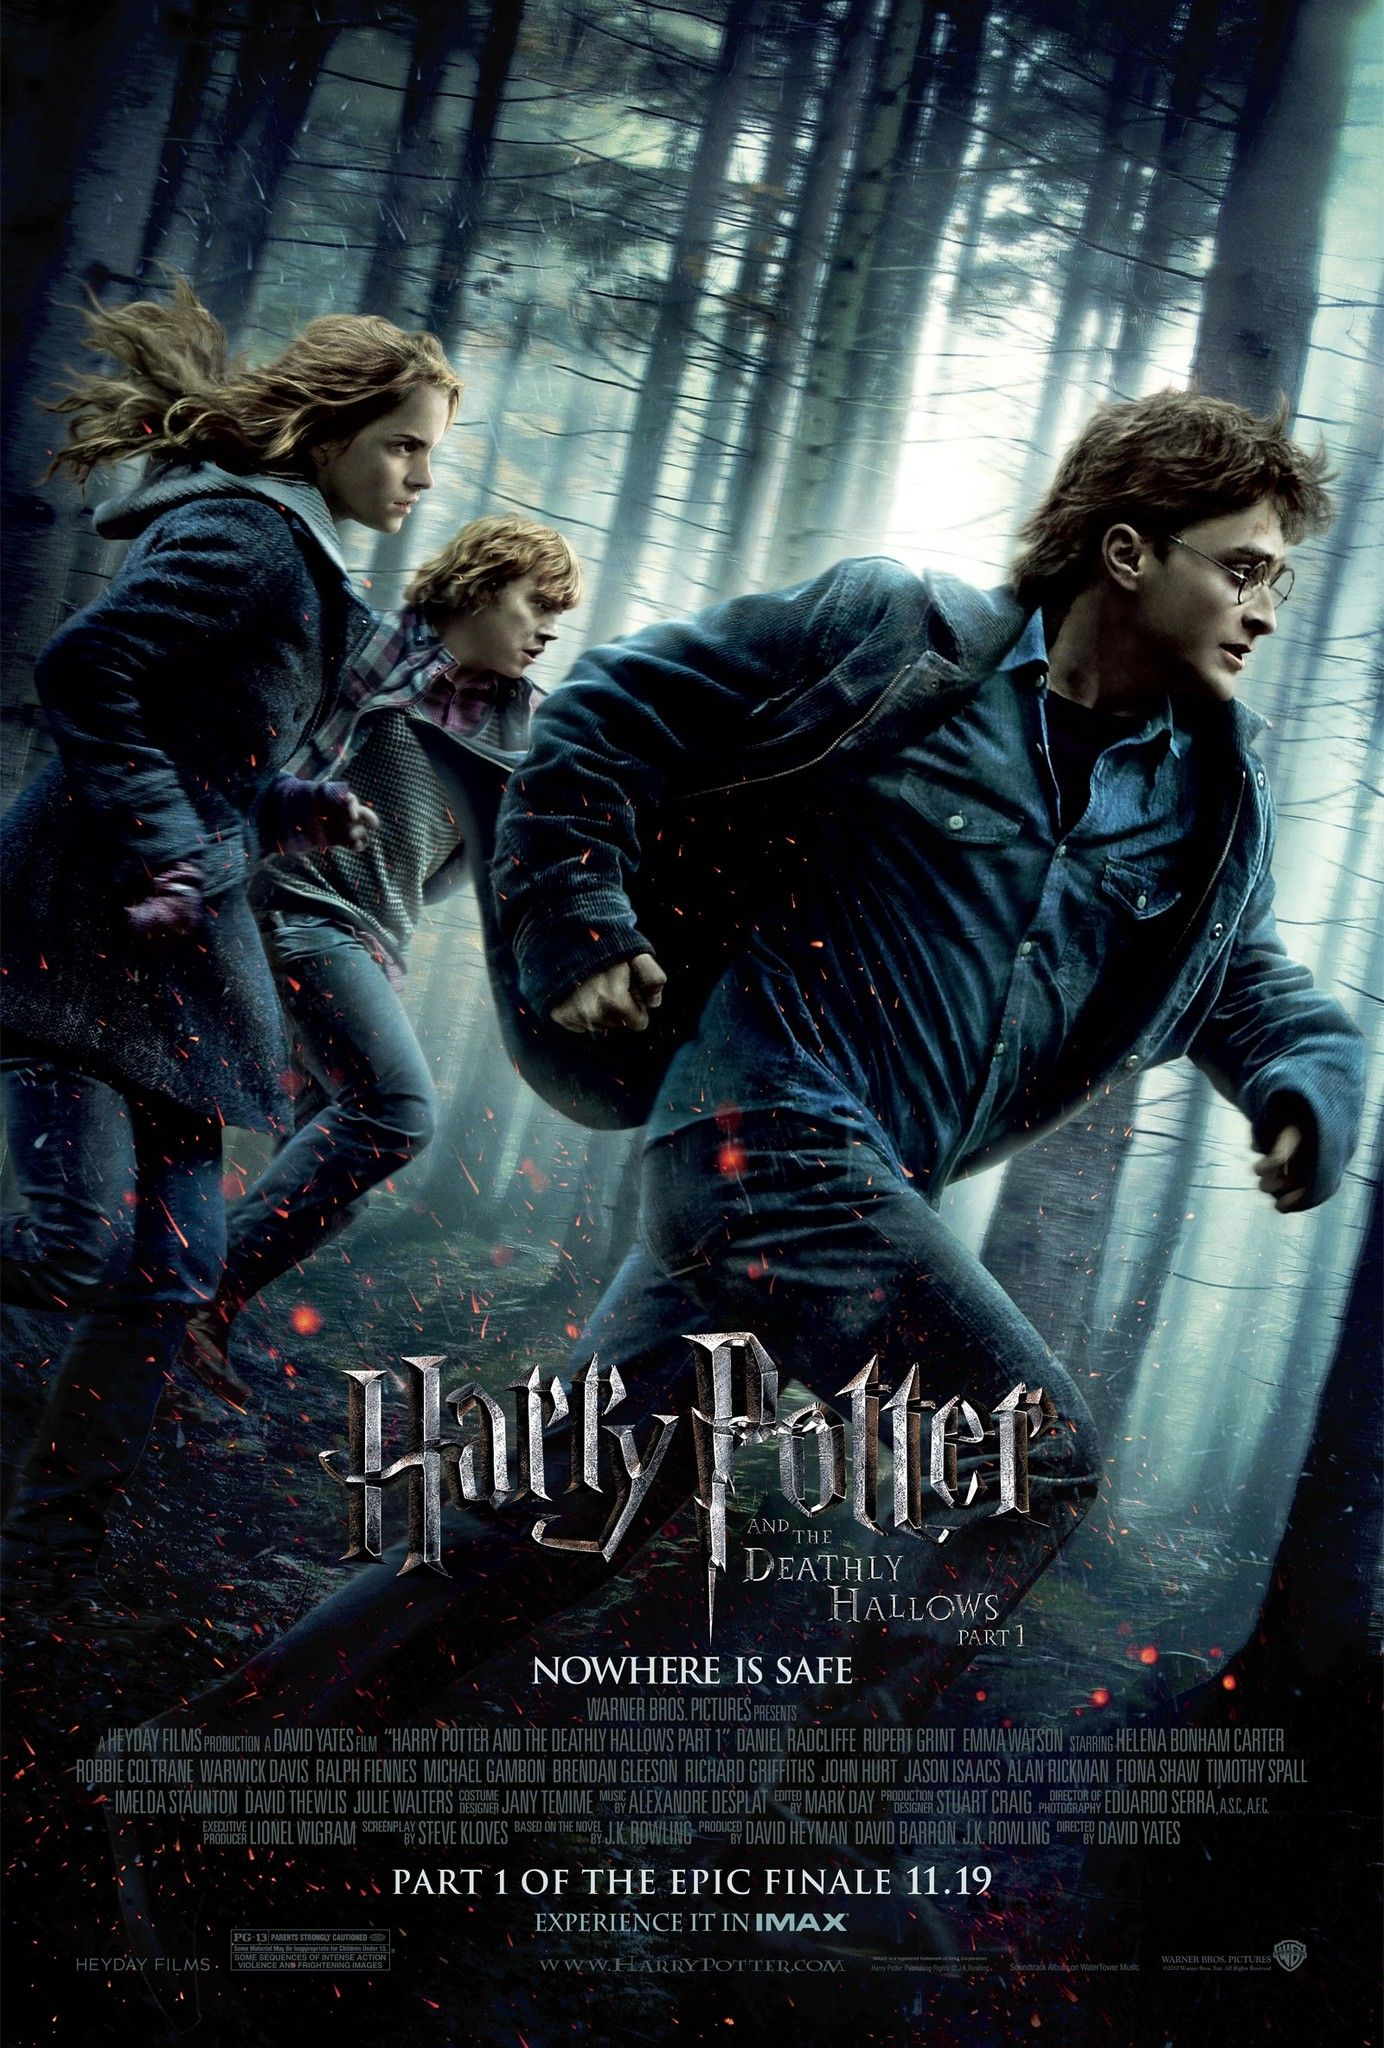 Harry Potter And The Deathly Hallows Part 1 2010 Harry Potter Filmes Cartaz Harry Potter